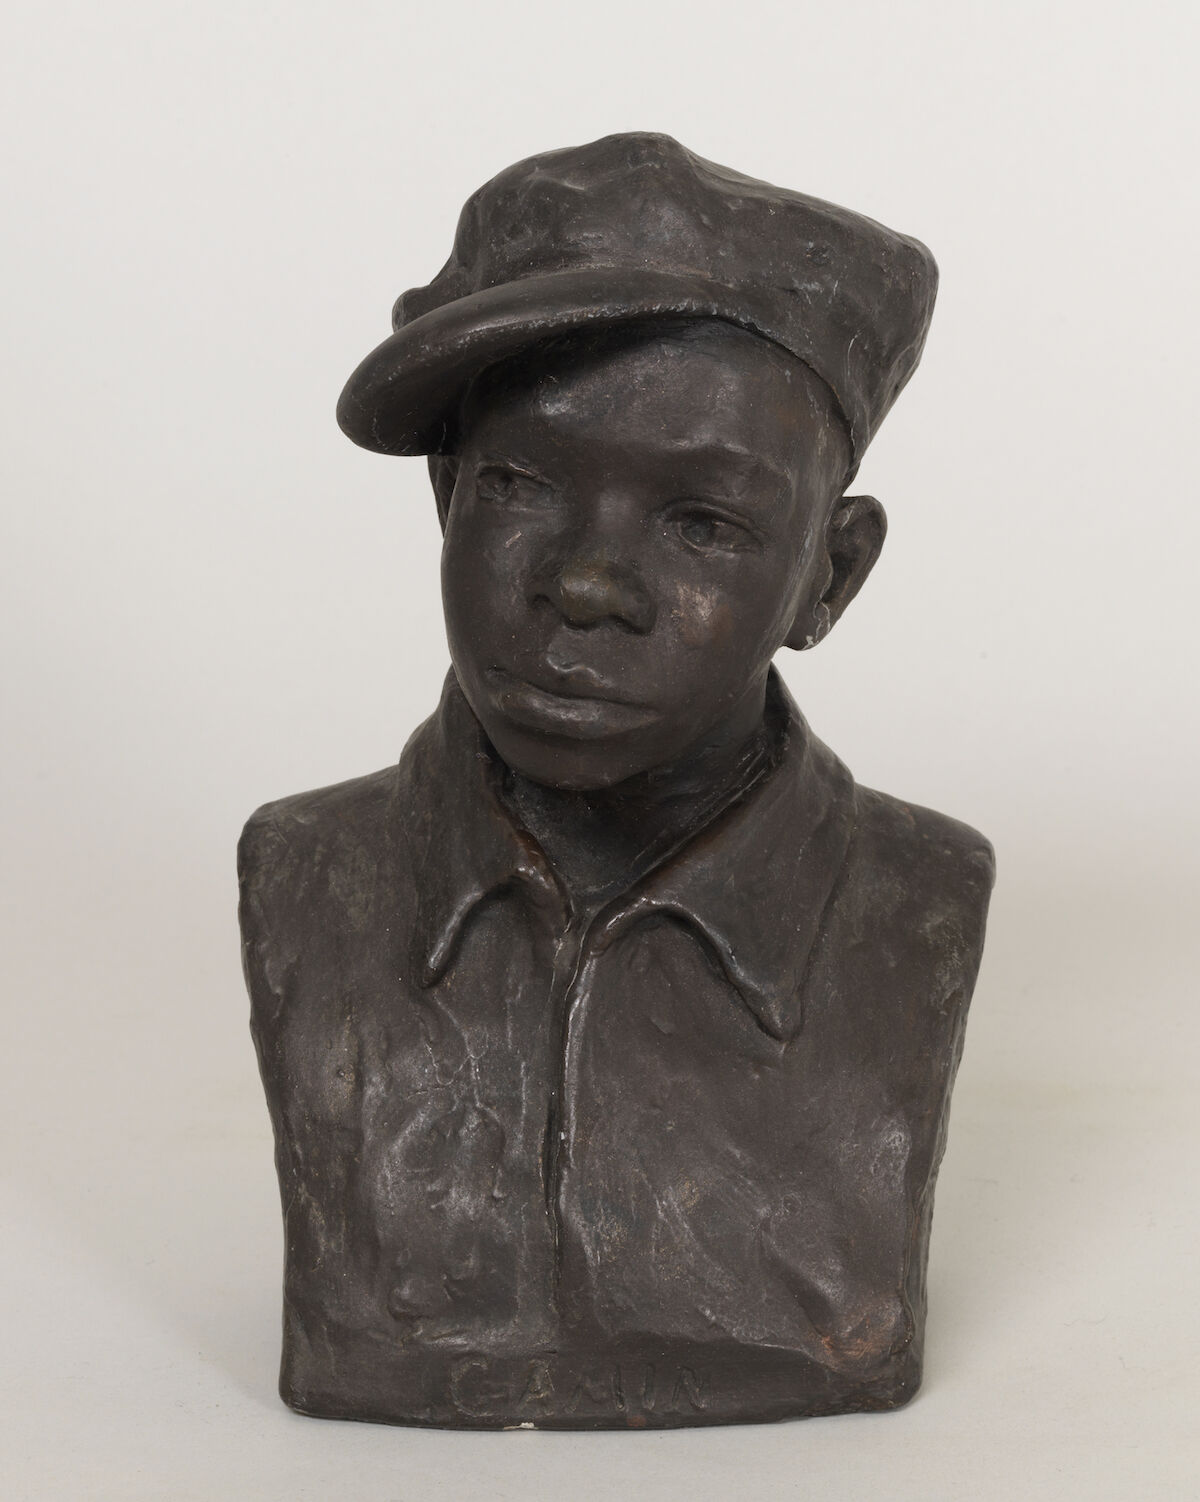 Augusta Savage, Gamin, n.d., plaster. Courtesy the Pennsylvania Academy of Fine Arts.